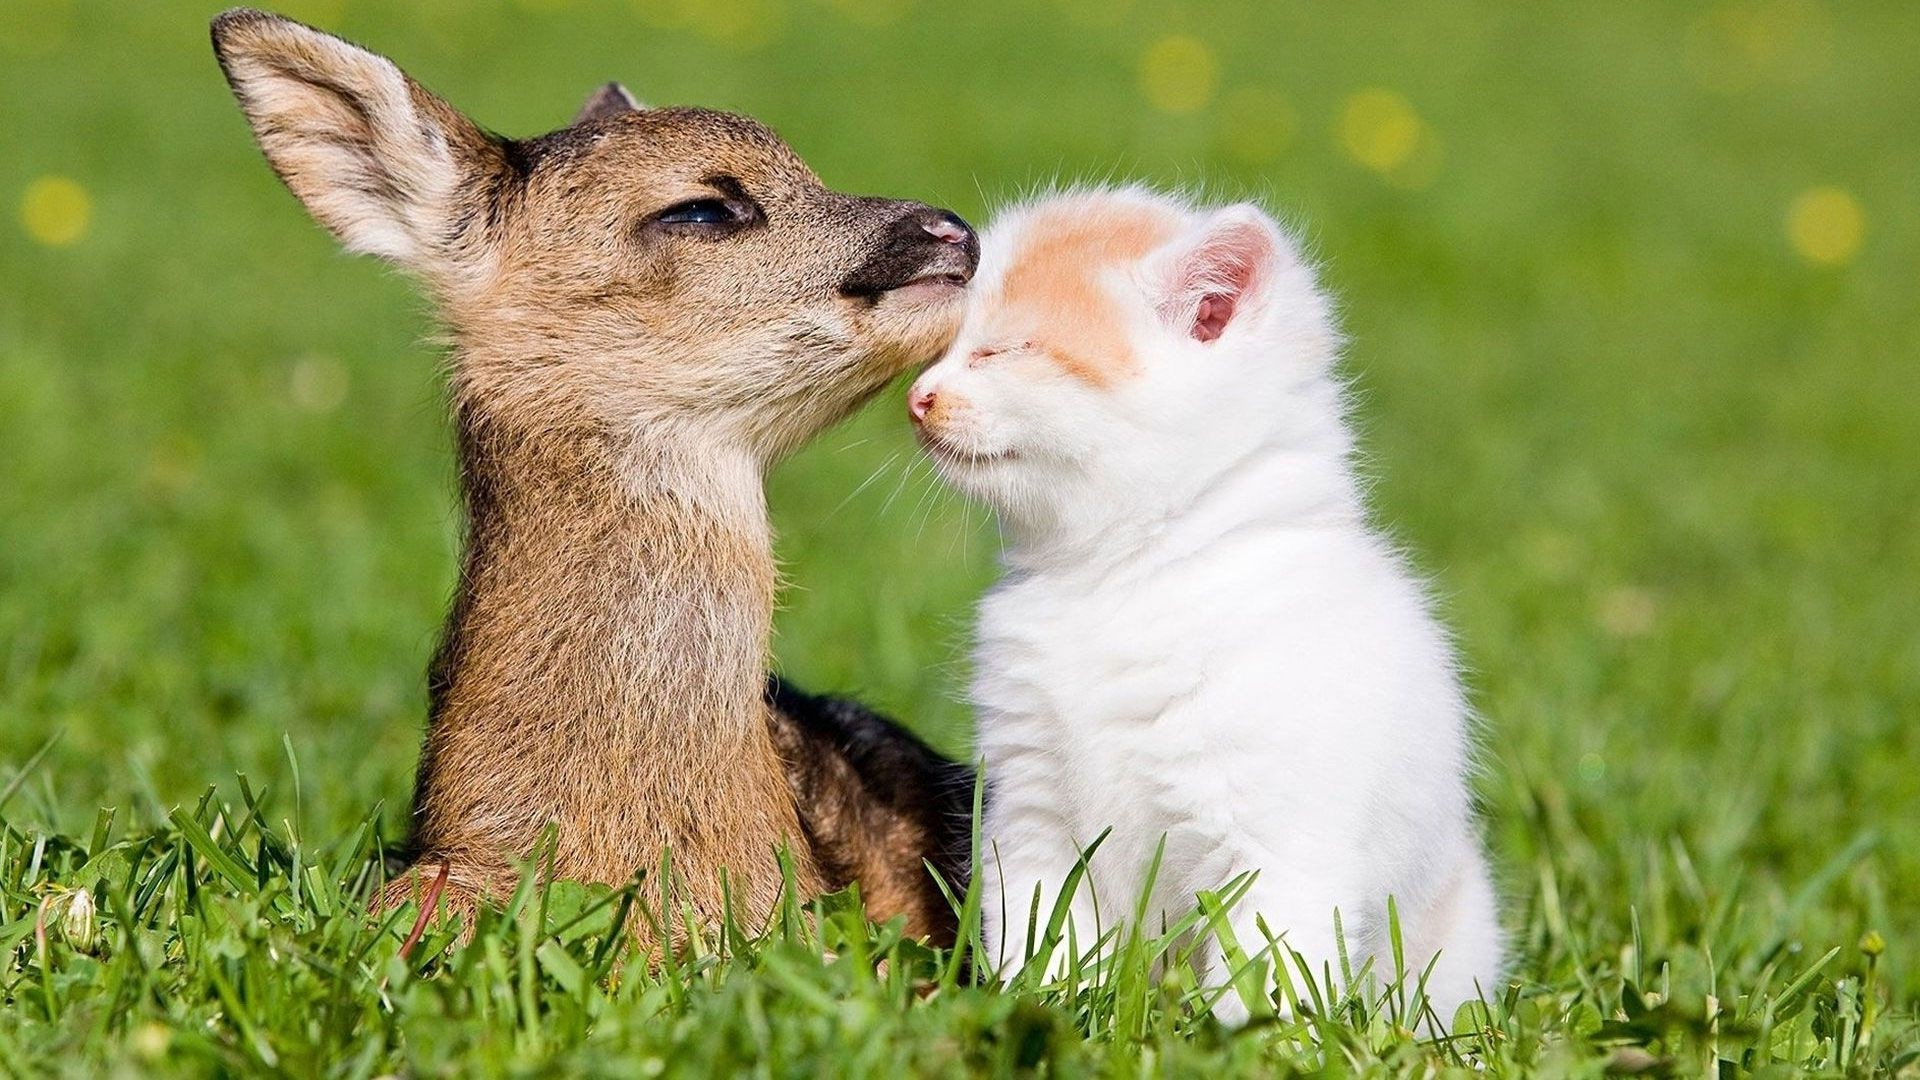 Cute Baby Animal Wallpapers (72+ background pictures)